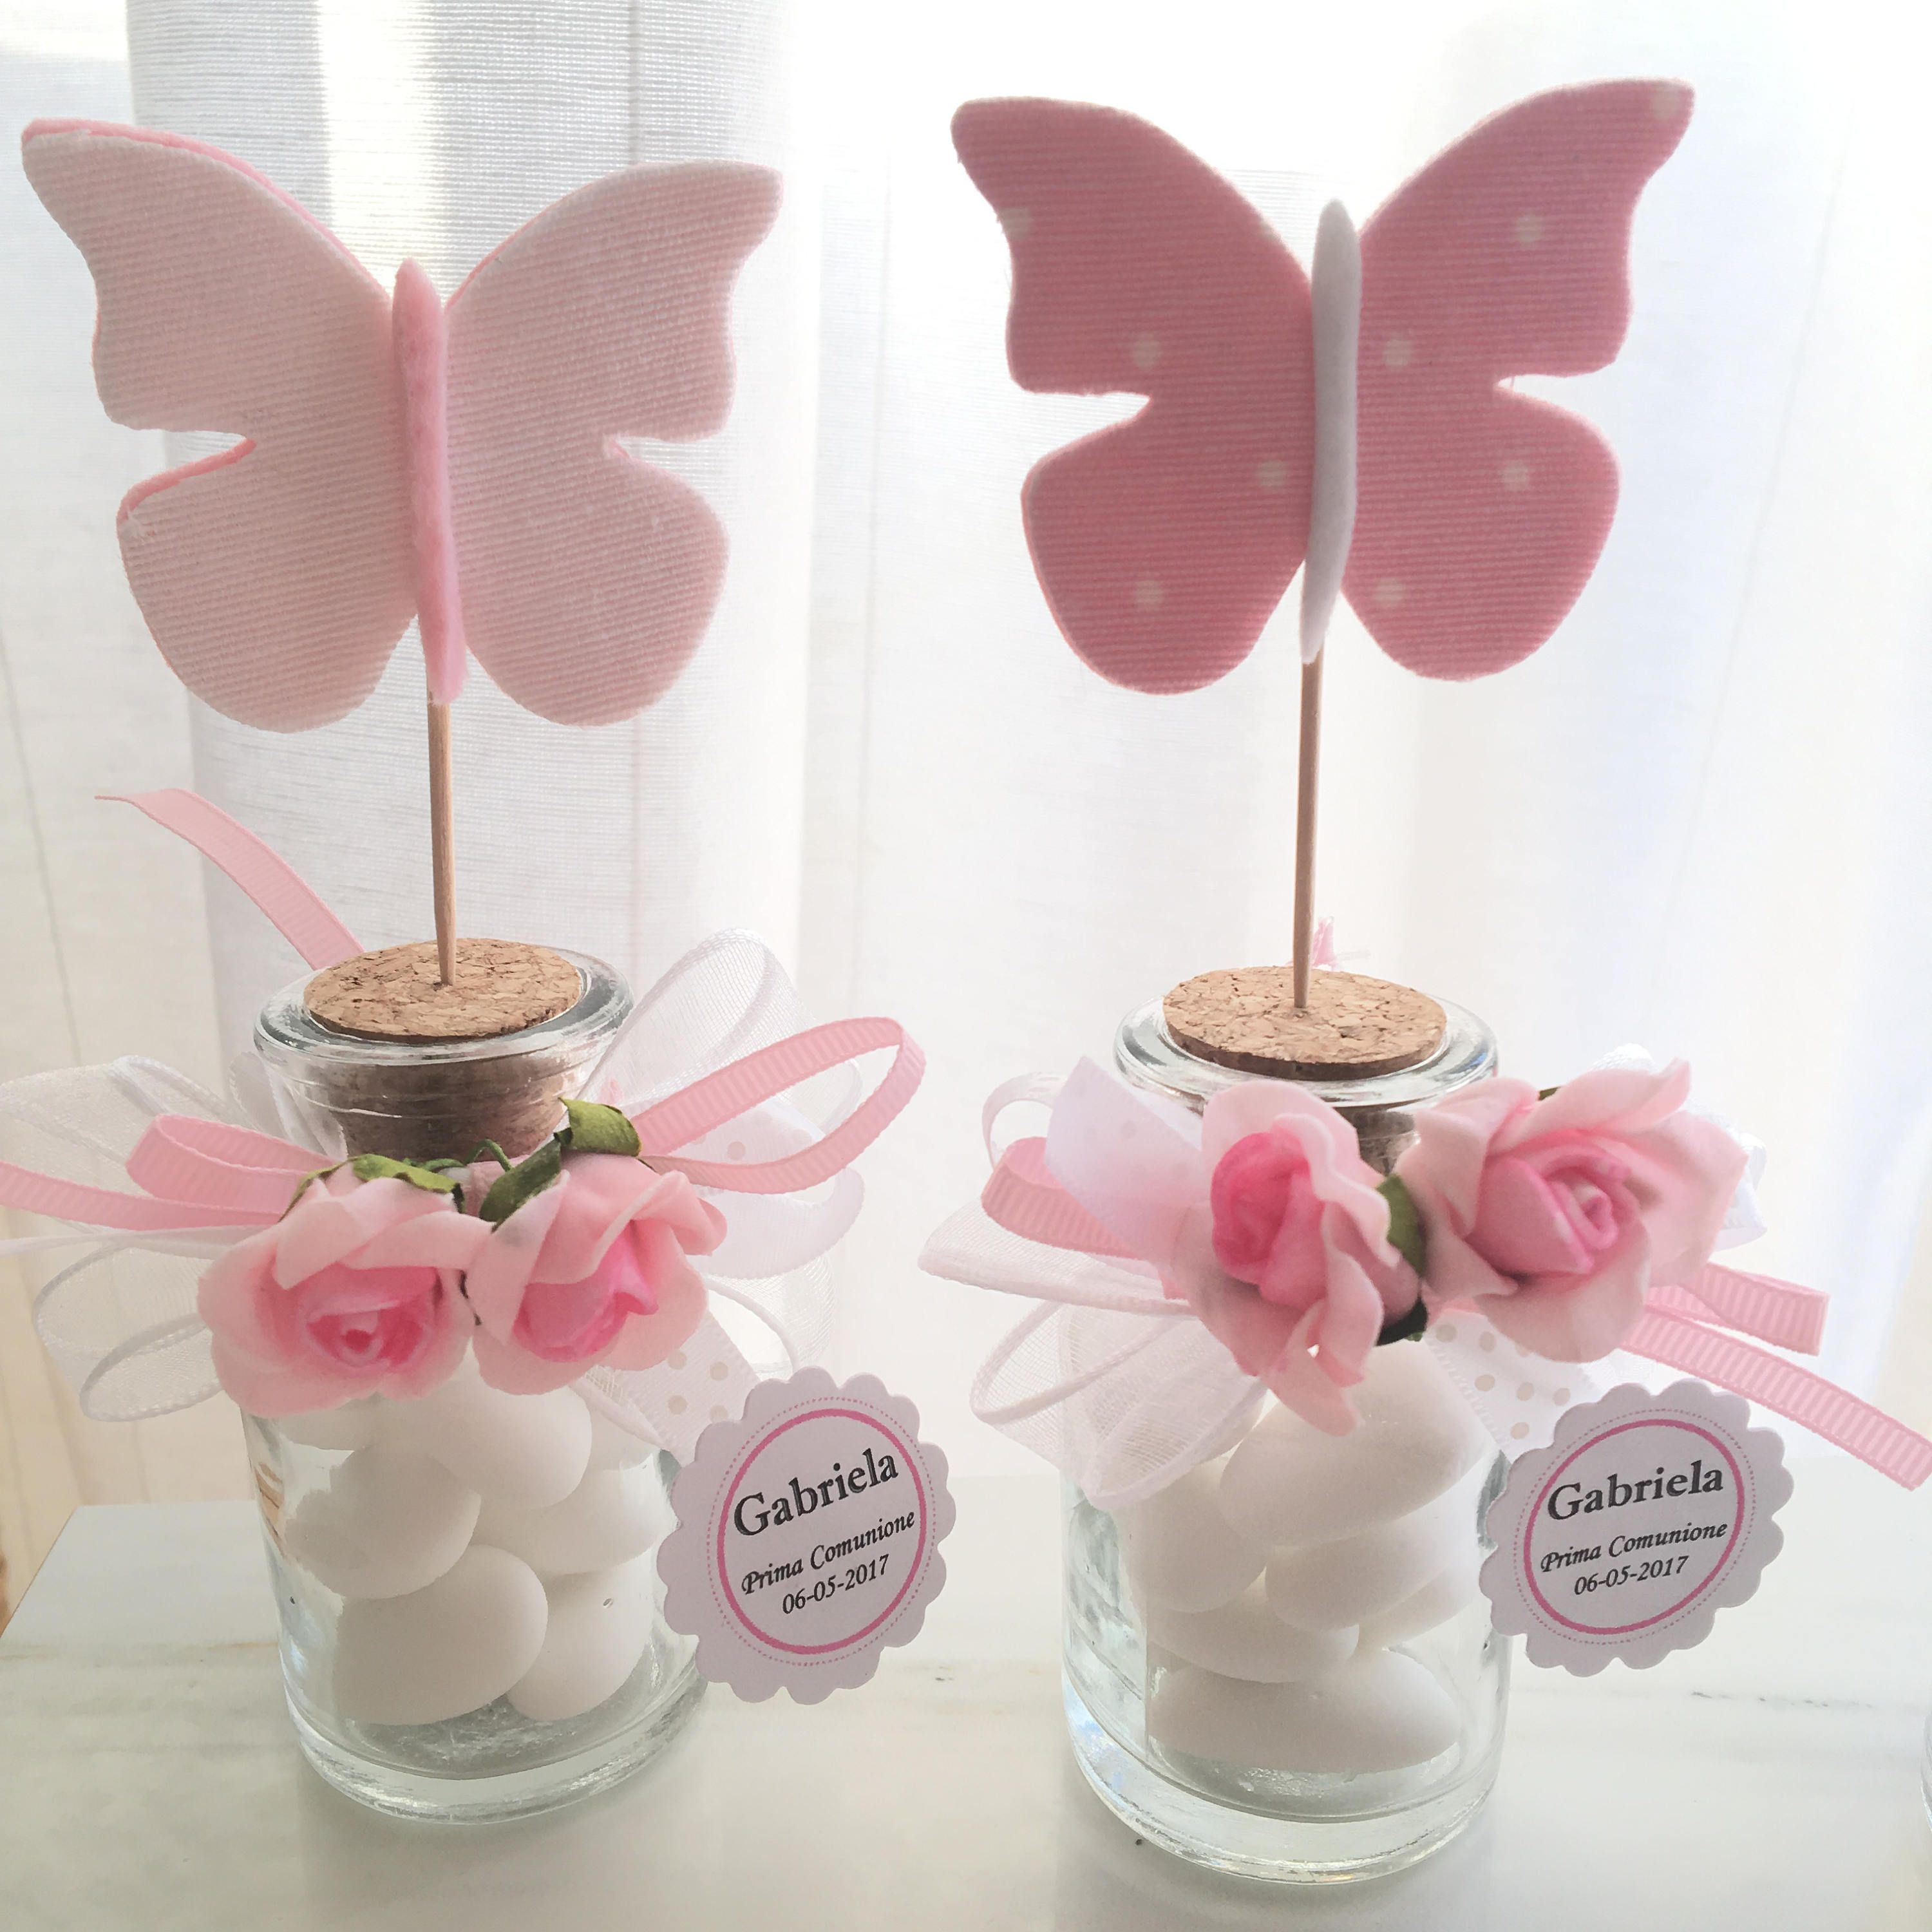 Personalized Favor For Girl S Communion Jar With Stopper And Felt And Fabric Butterfly Assorted Colors In Pink And White And Beige Shades Girl Baby Shower Decorations Butterfly Wedding Decorations Butterfly Baby